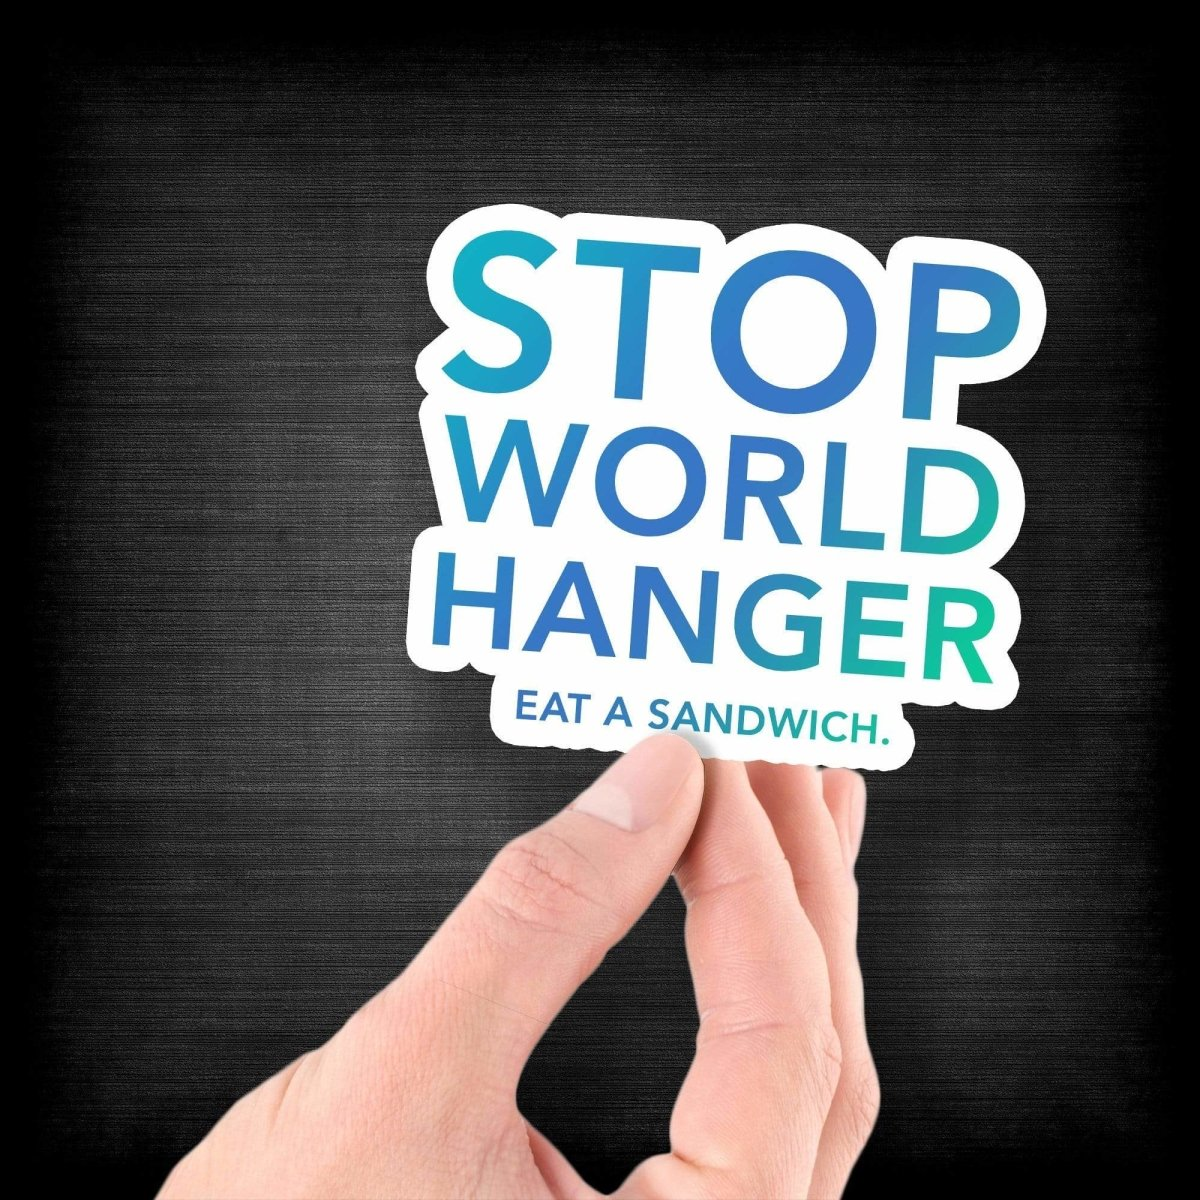 Stop World Hanger - Eat a Sandwich - Vinyl Sticker - Dan Pearce Sticker Shop